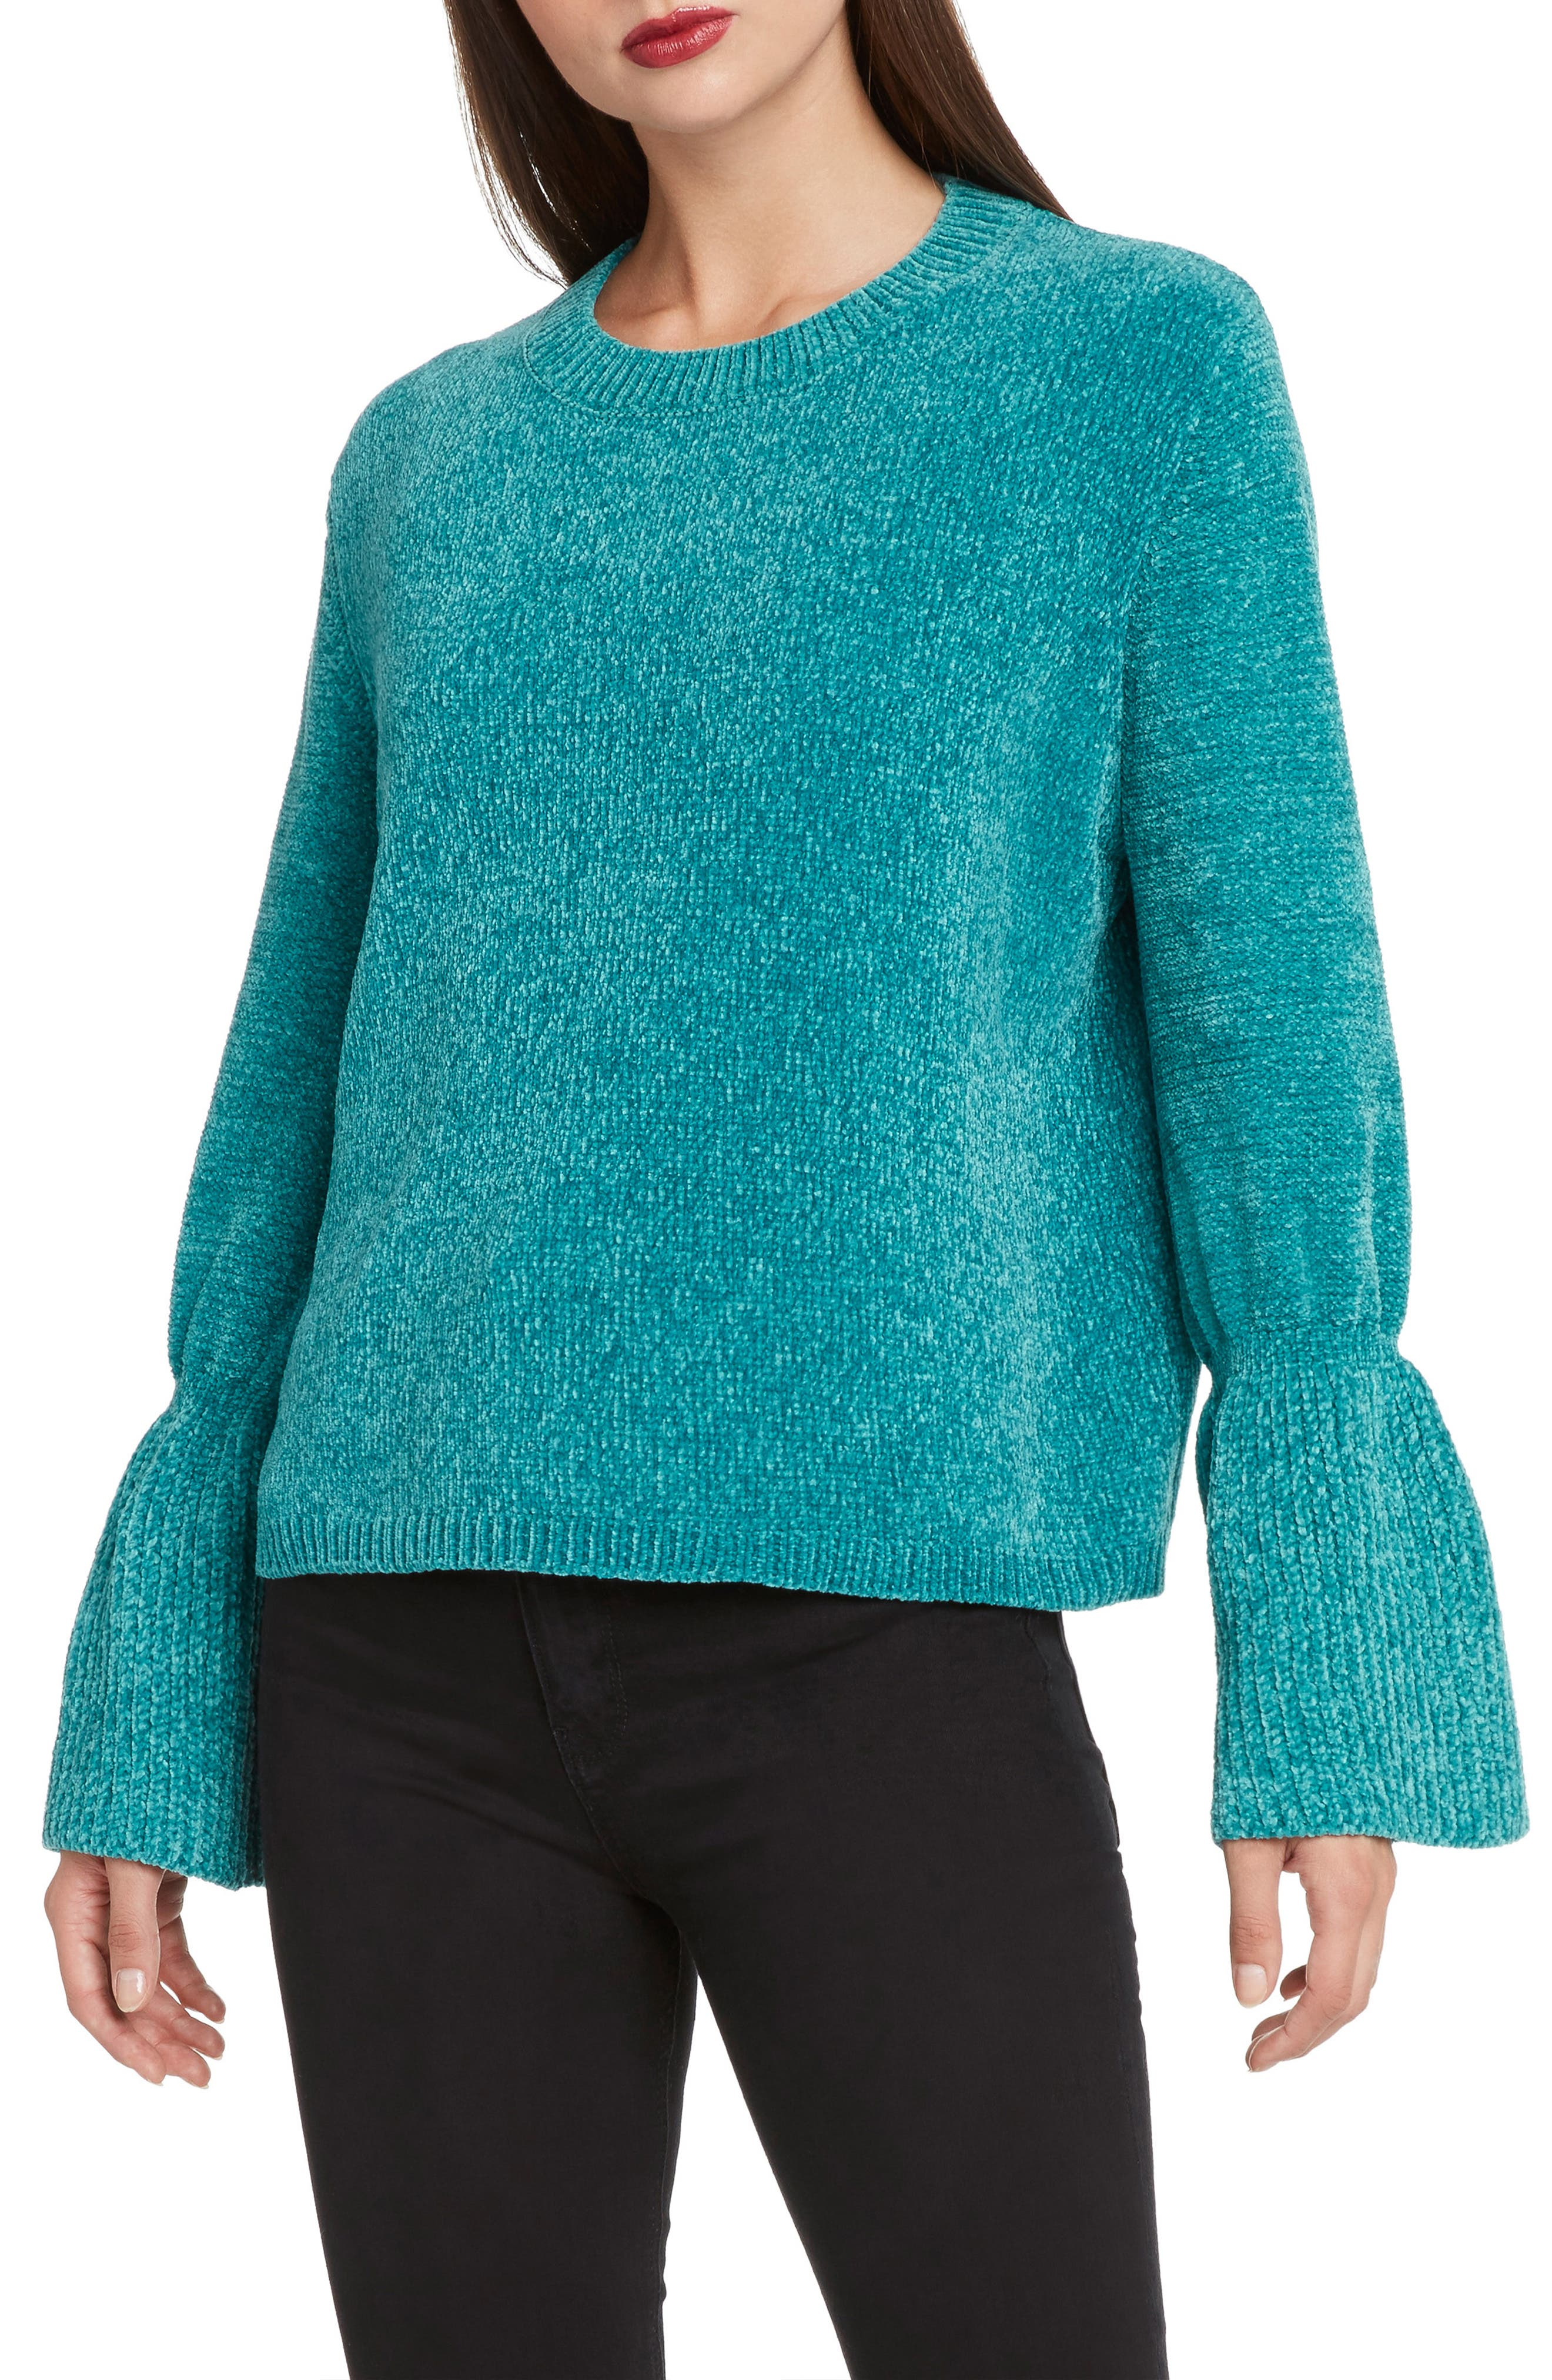 WILLOW & CLAY Chenille Bell Sleeve Sweater in Lagoon